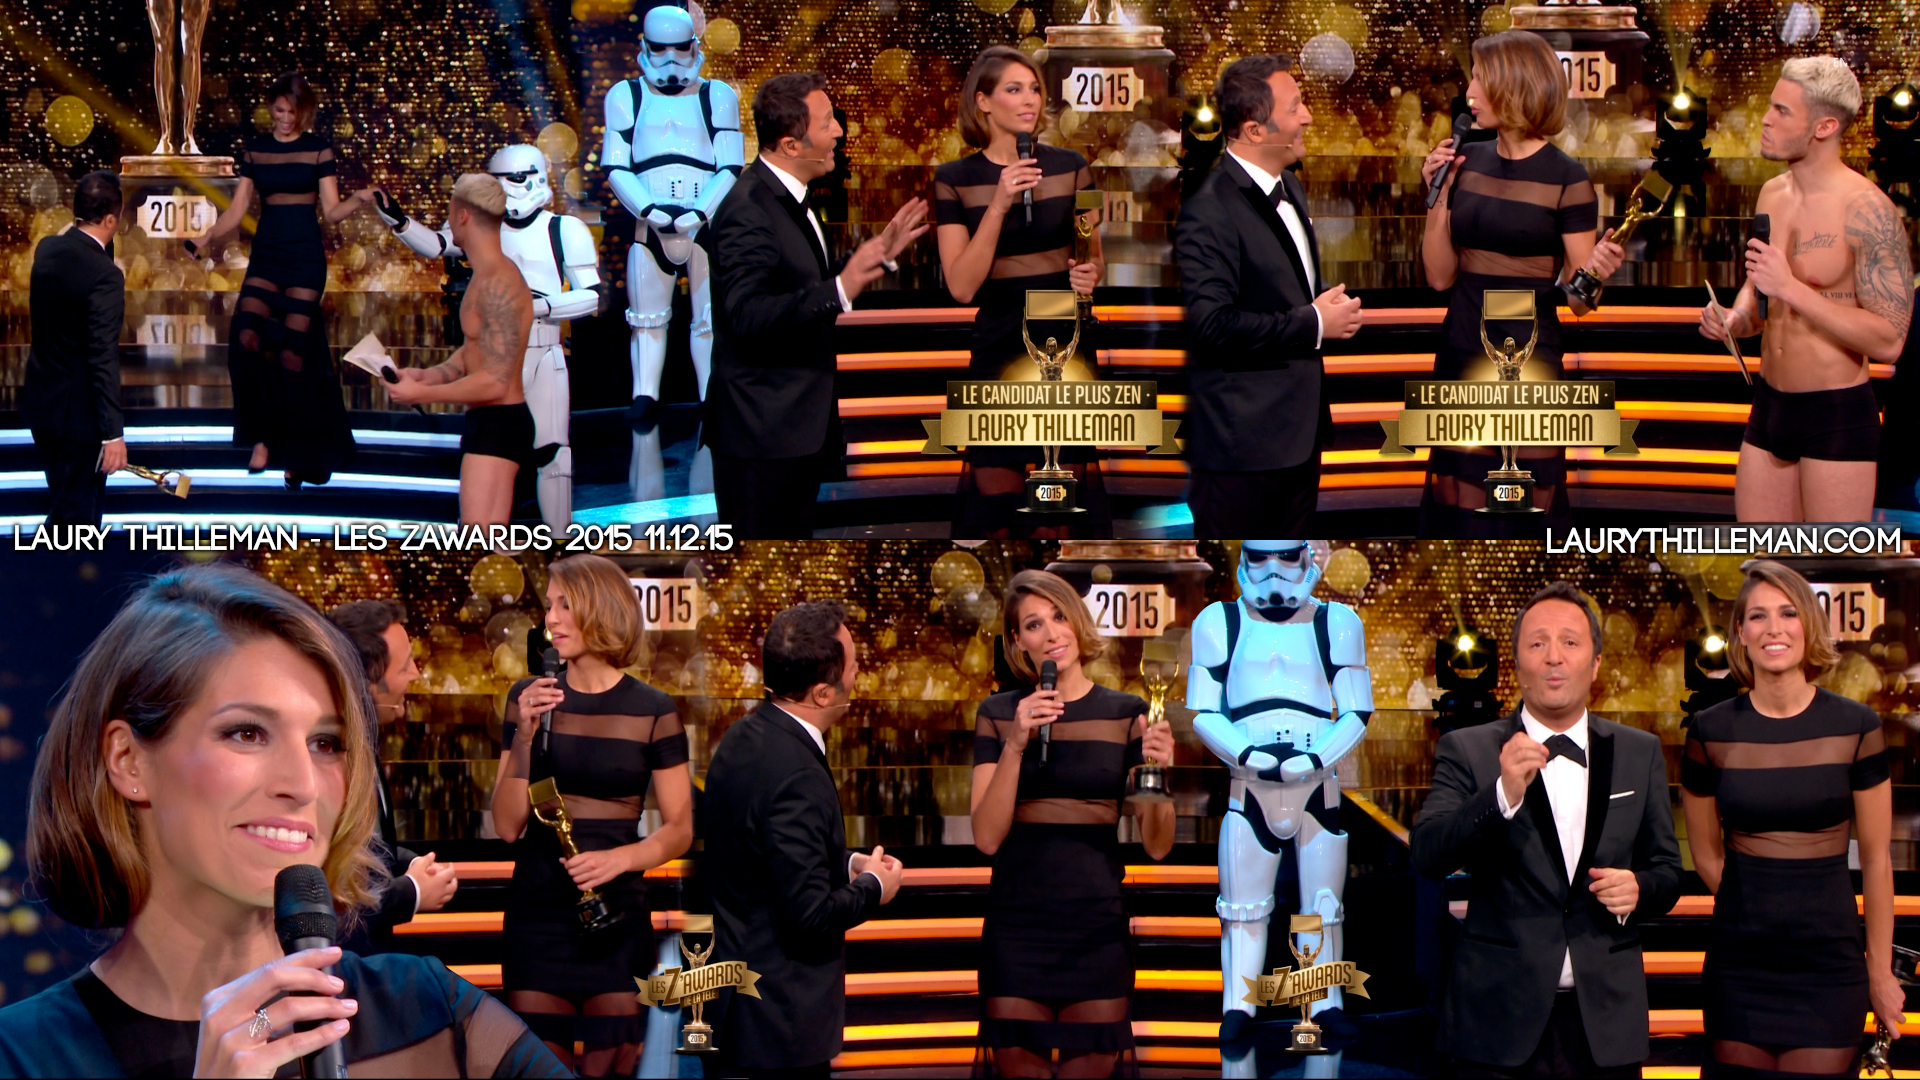 Laury-Thilleman-Les-zawards-2015-TF1-111215